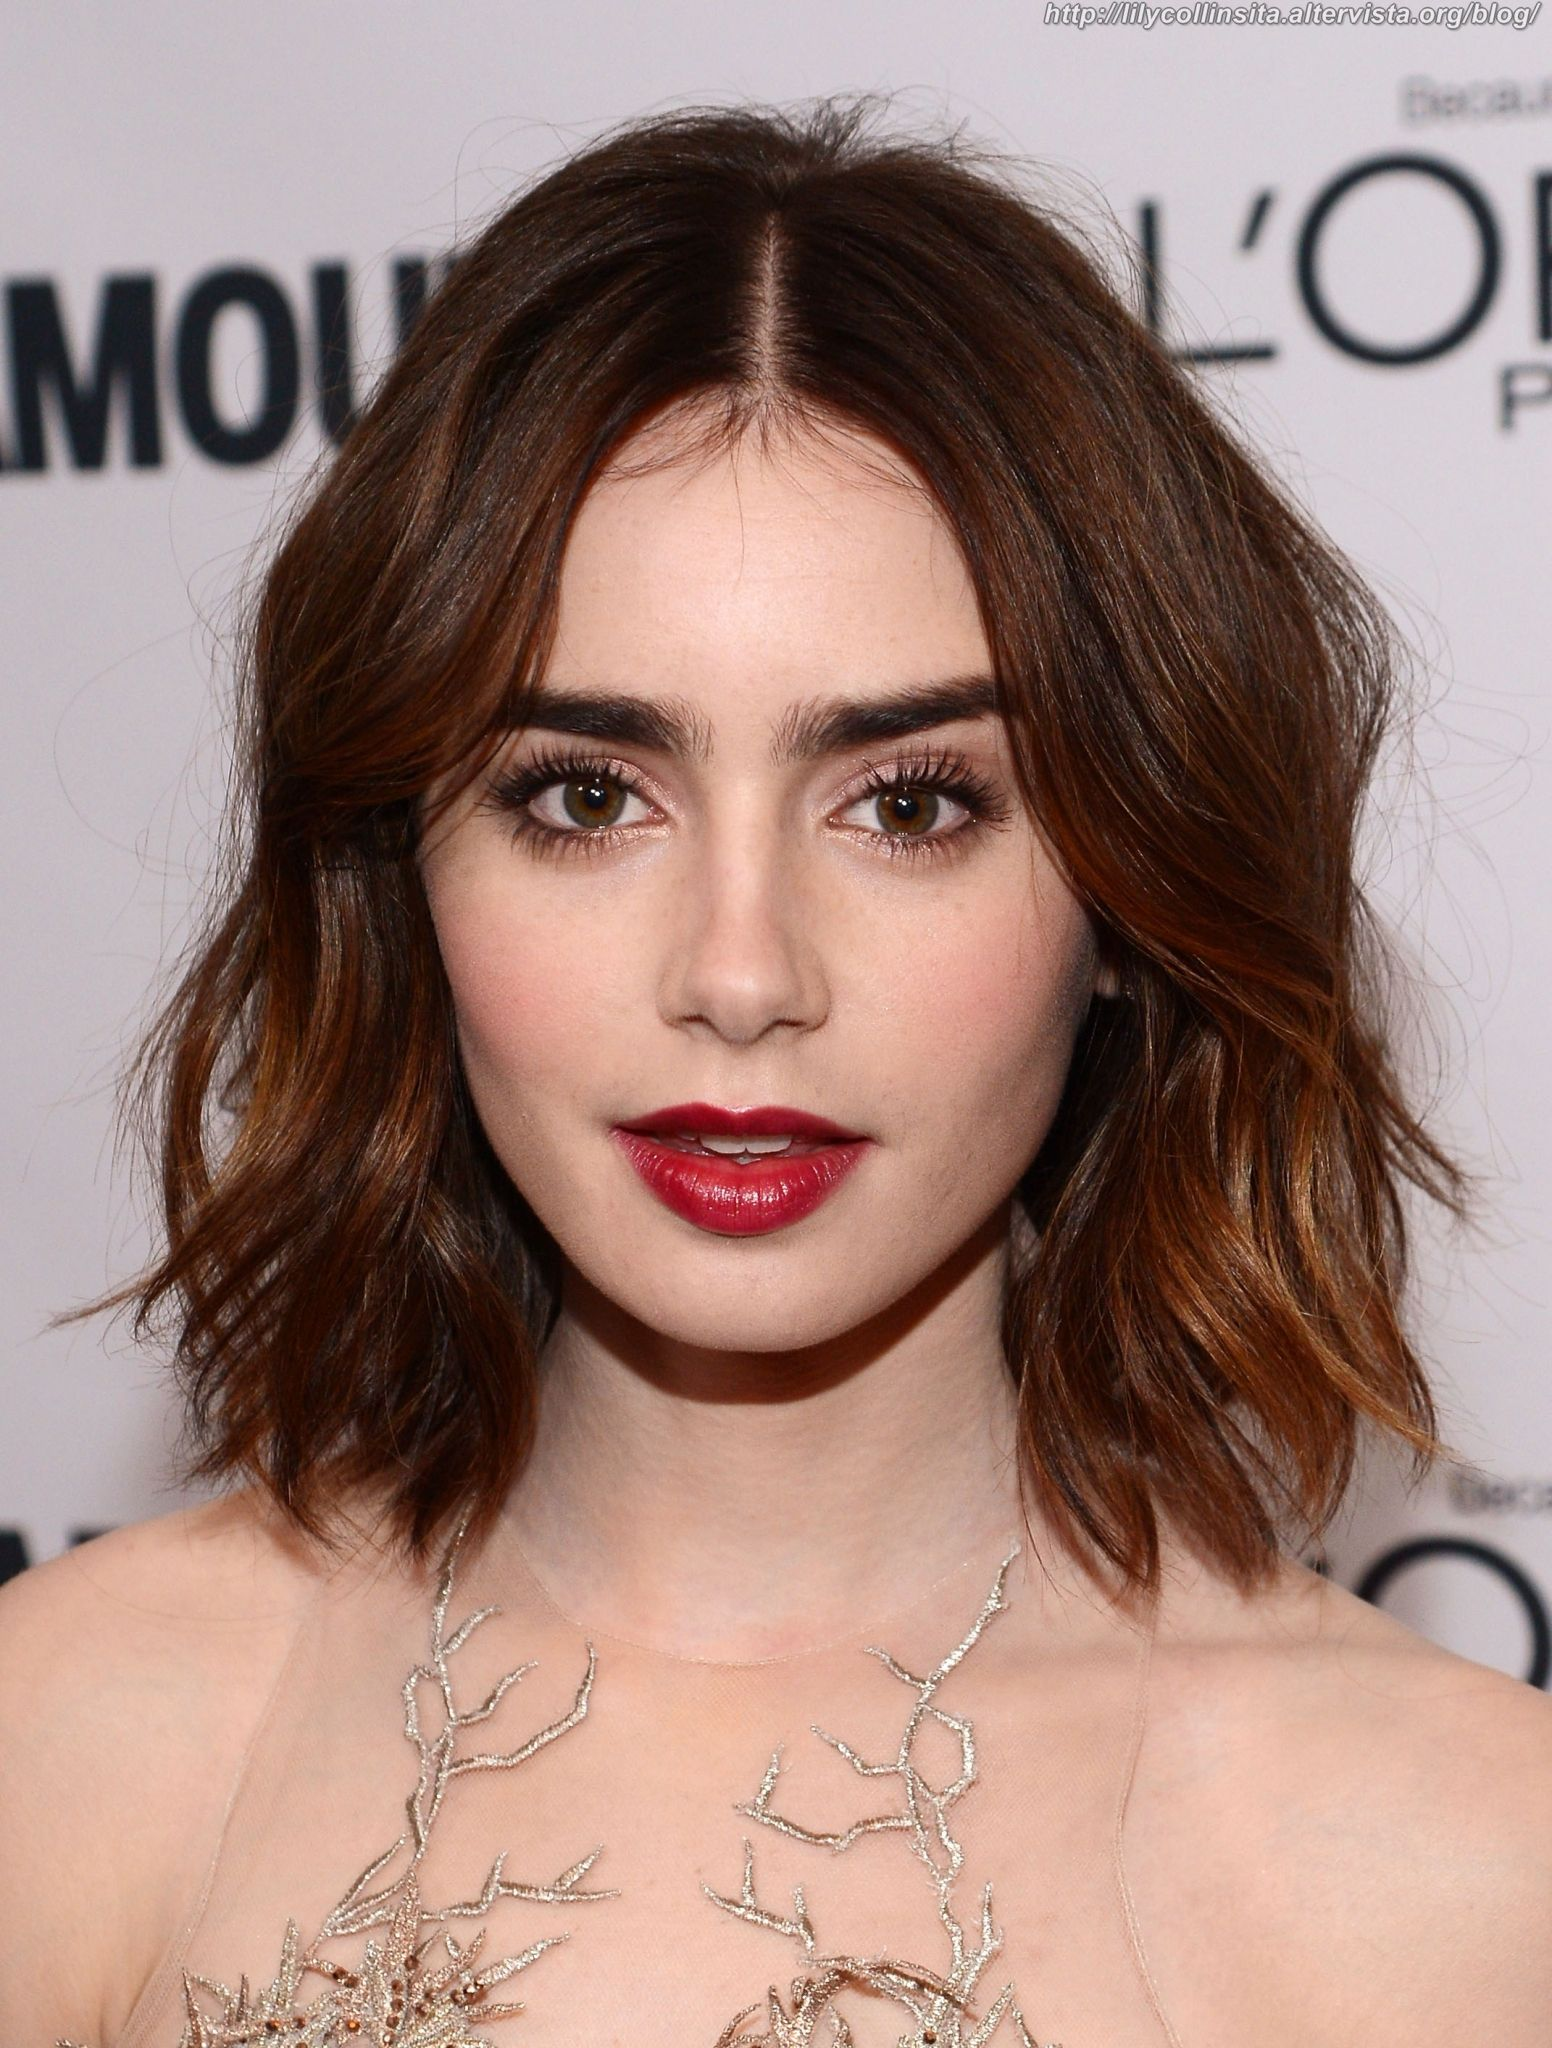 From lily collins hairstyles 2017 best haircuts and hair colors - Lily Collins Red Carpet Hair And Make Up In 2013 Edgy Texturized Long Bob And Vampy Red Lips Photo Getty Images